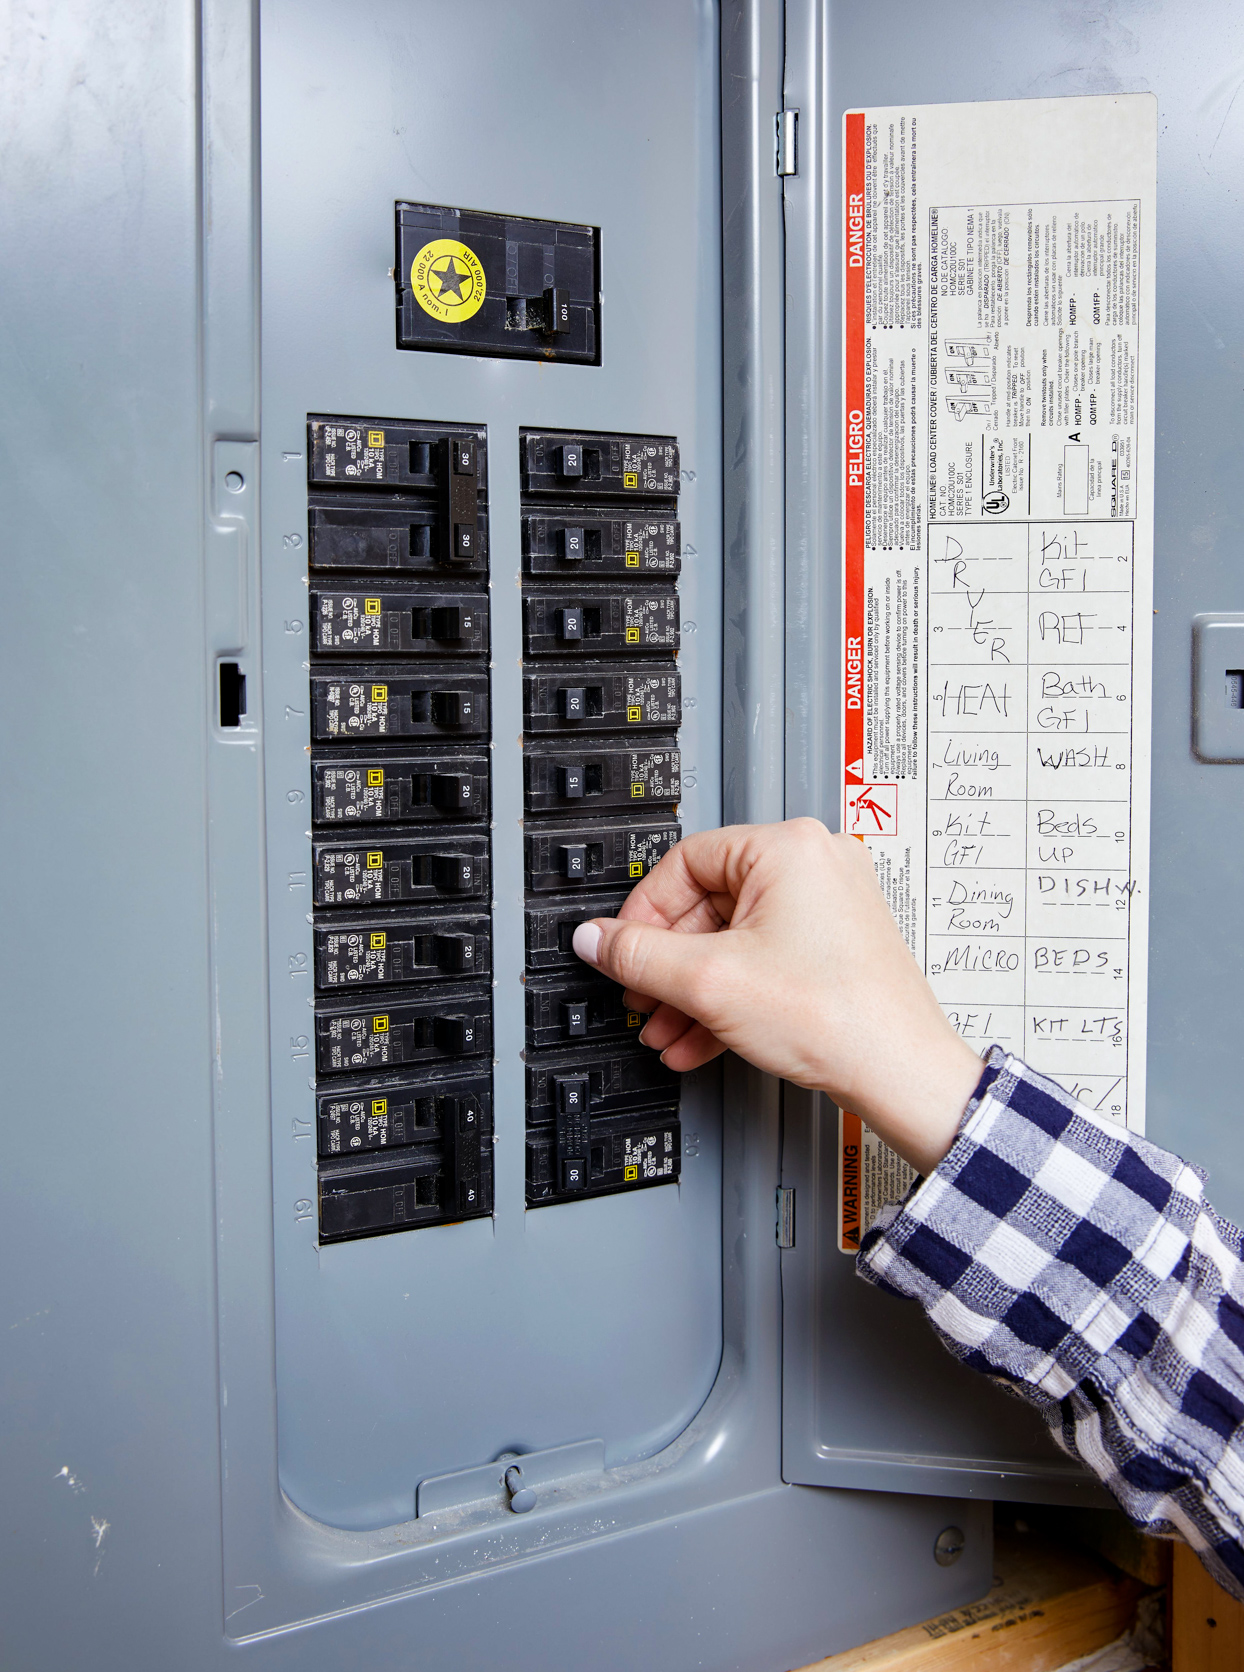 person flipping switch in circuit box